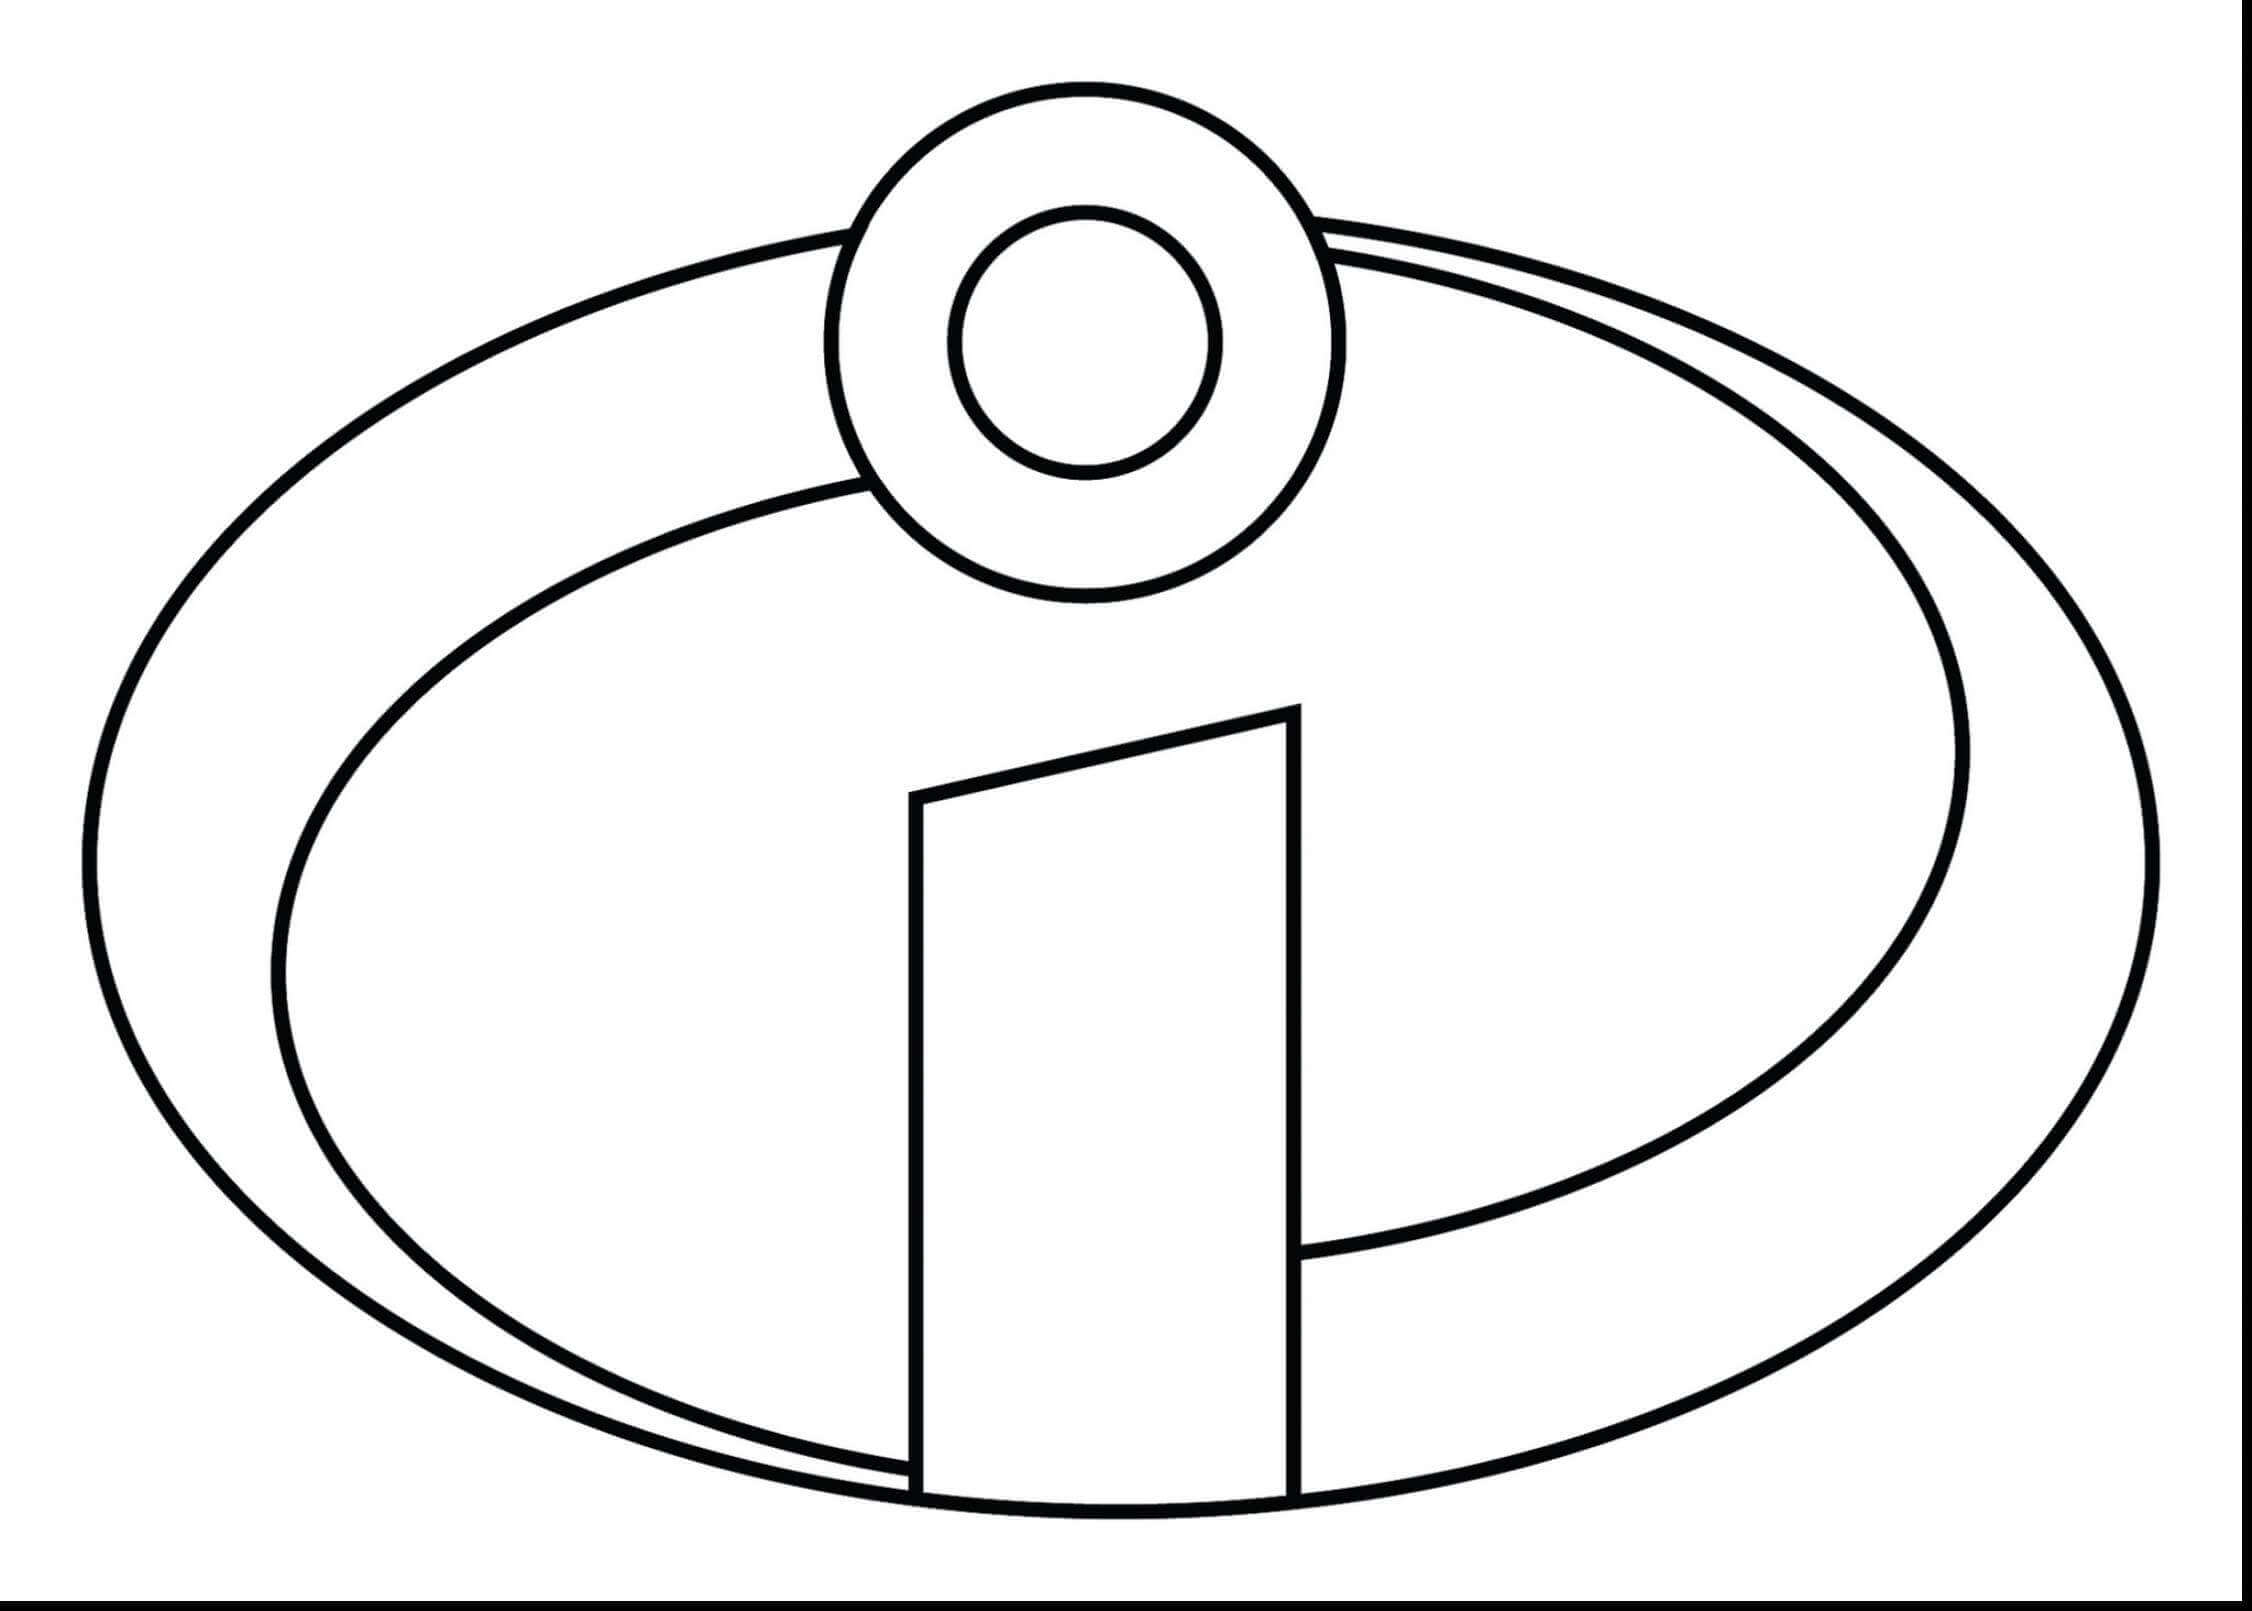 free printable incredibles 2 coloring pages incredibles coloring pages best coloring pages for kids 2 free printable pages incredibles coloring